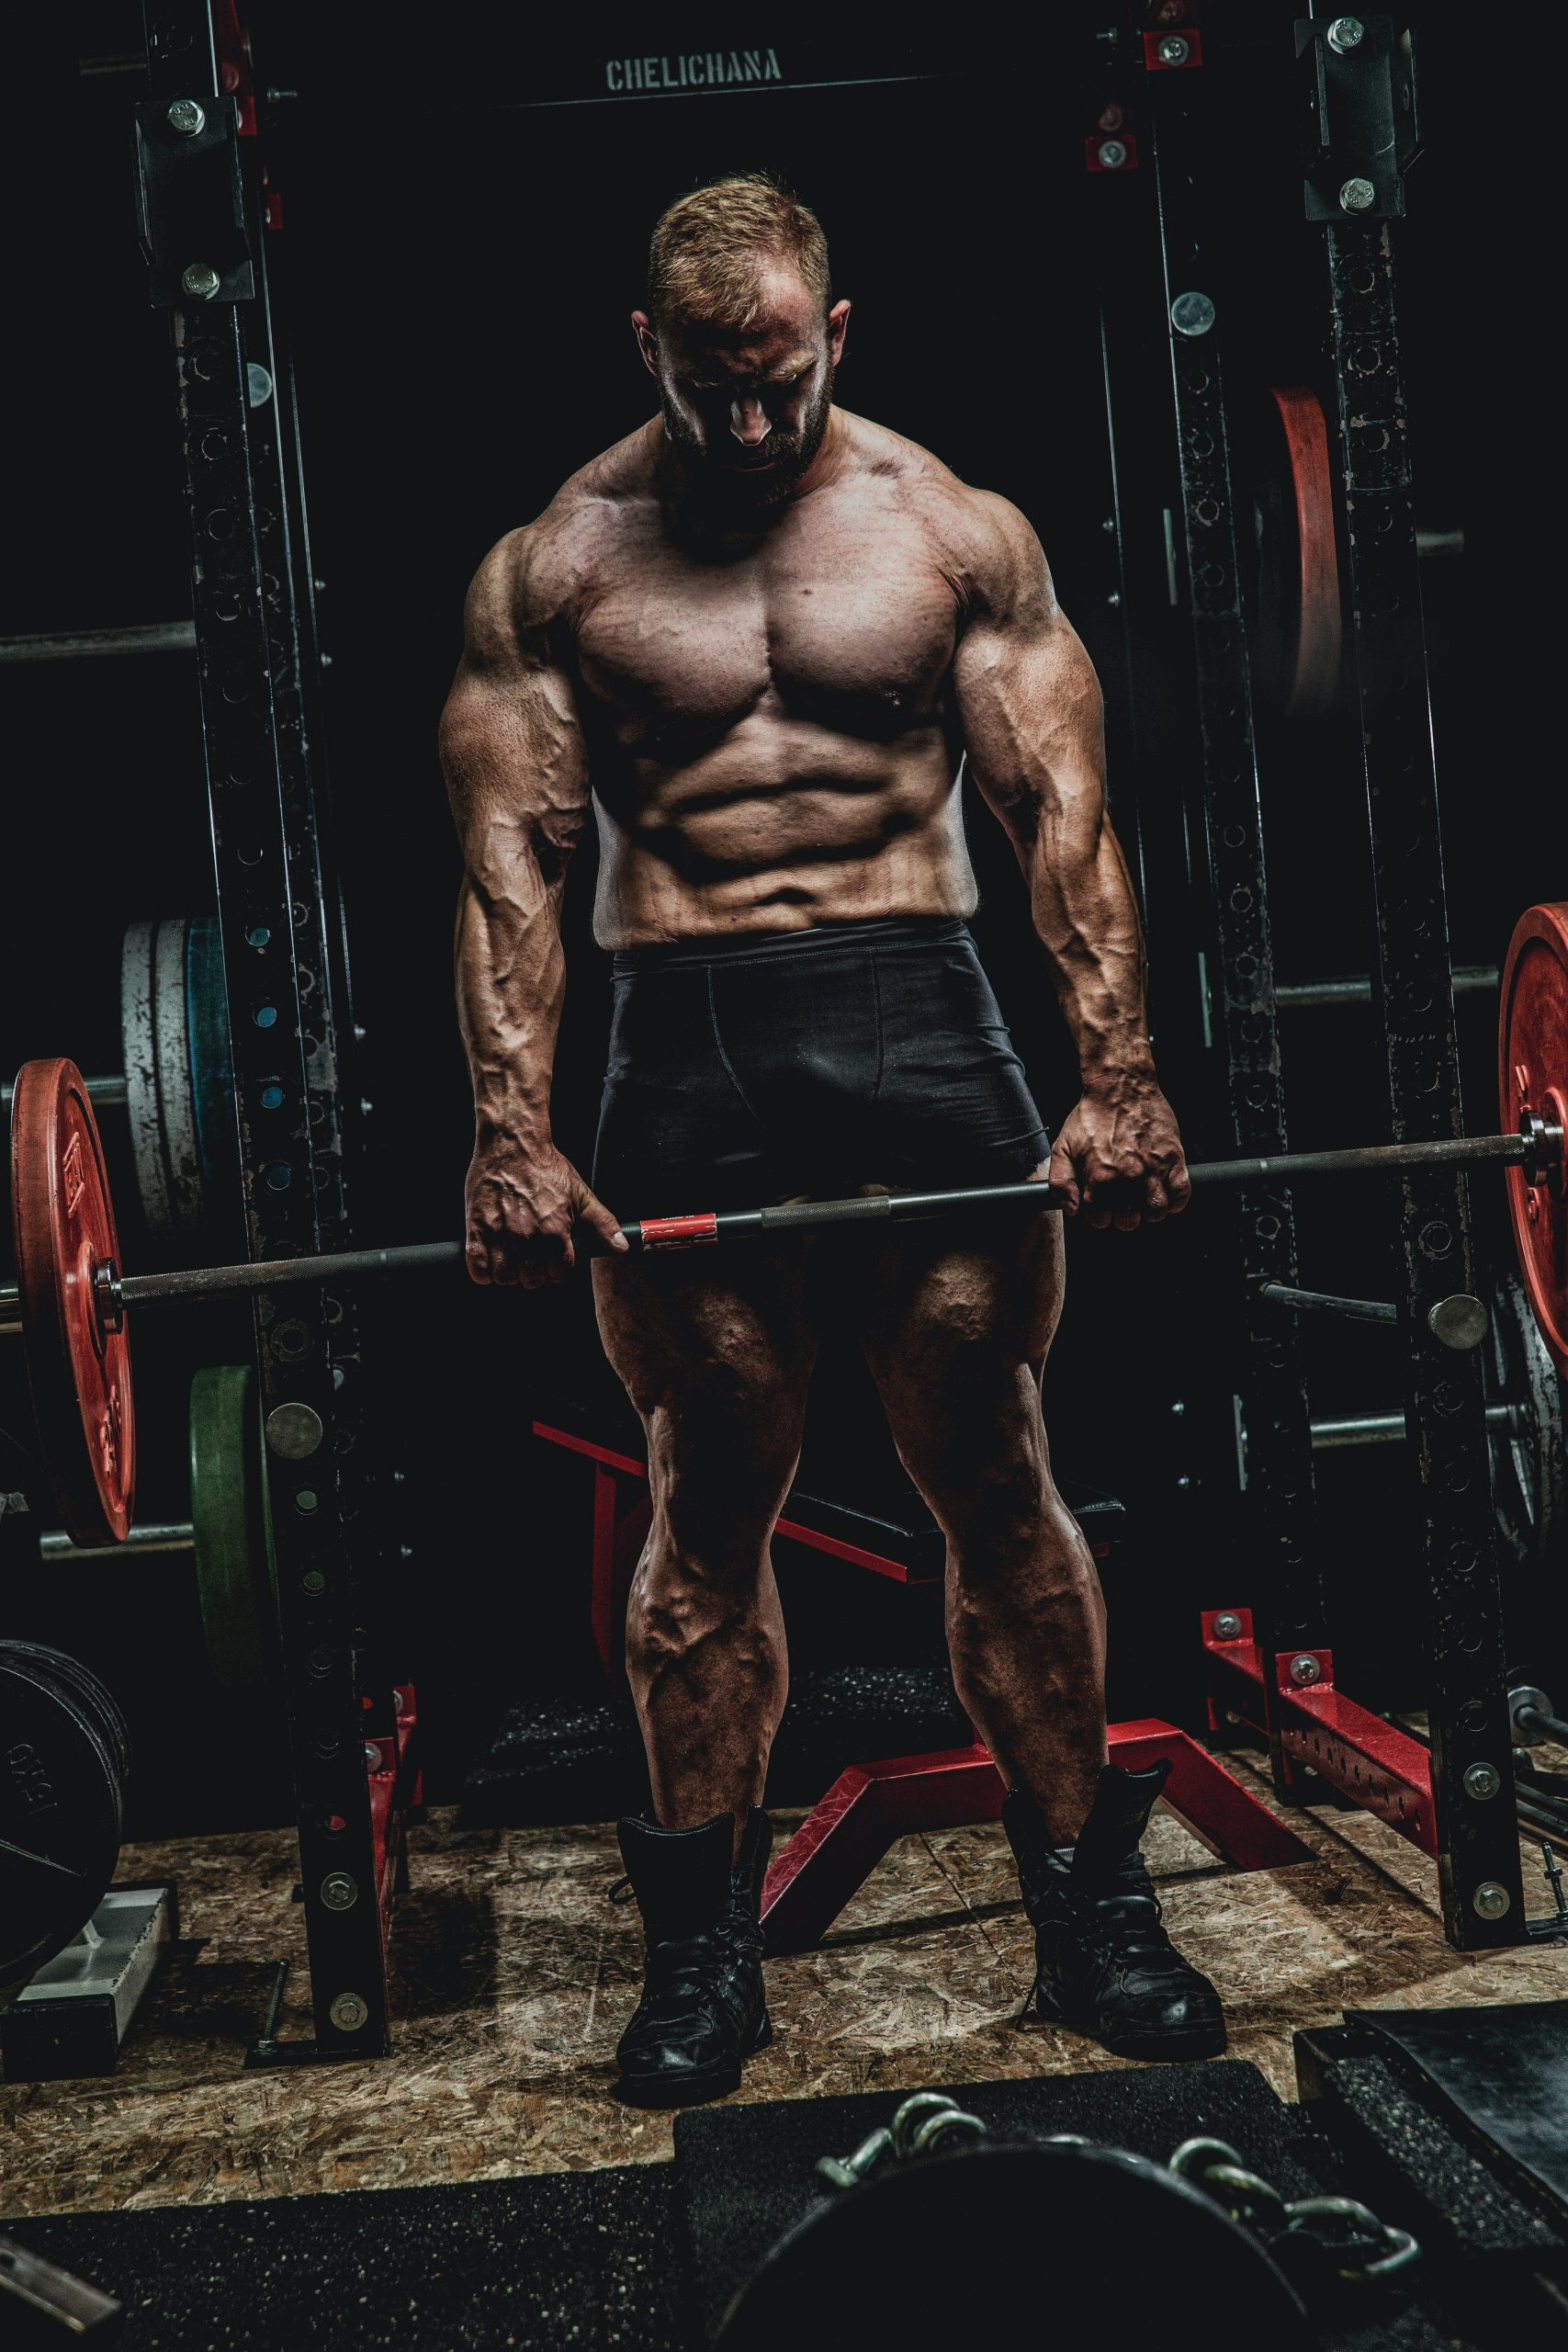 man in steroids for sale carrying weights